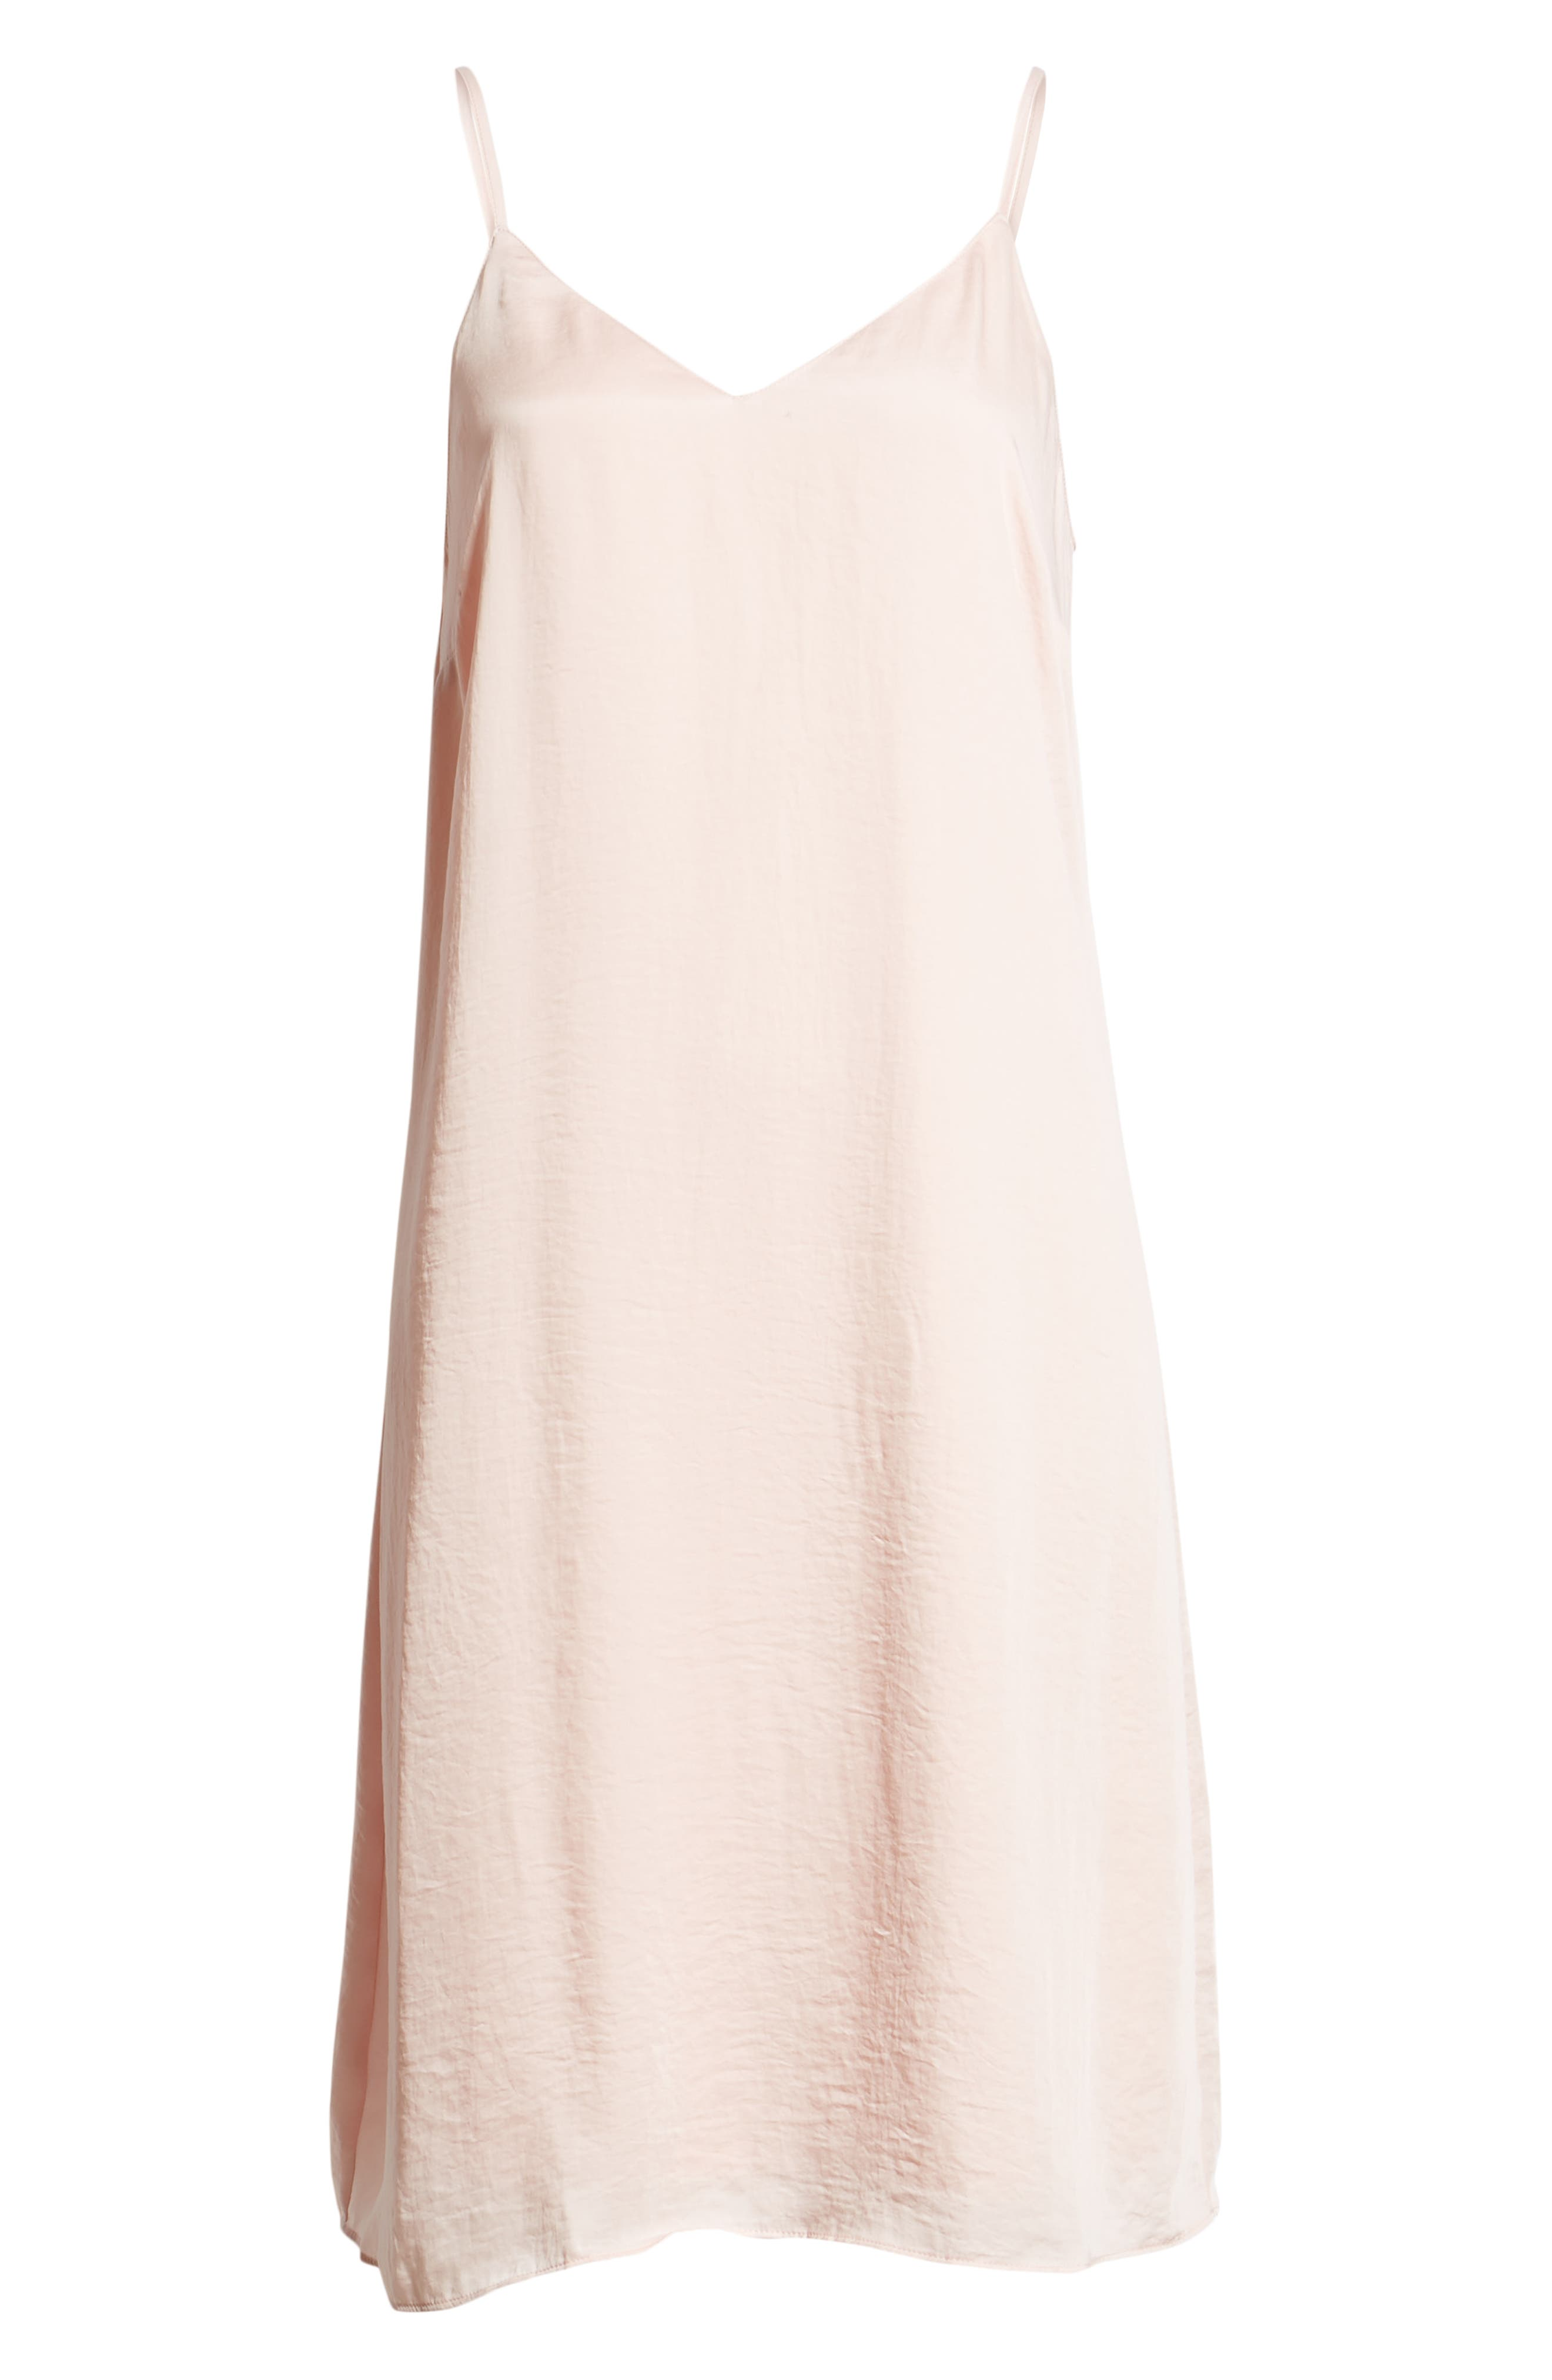 Hammered Satin Midi Slipdress,                             Alternate thumbnail 7, color,                             BLUSH